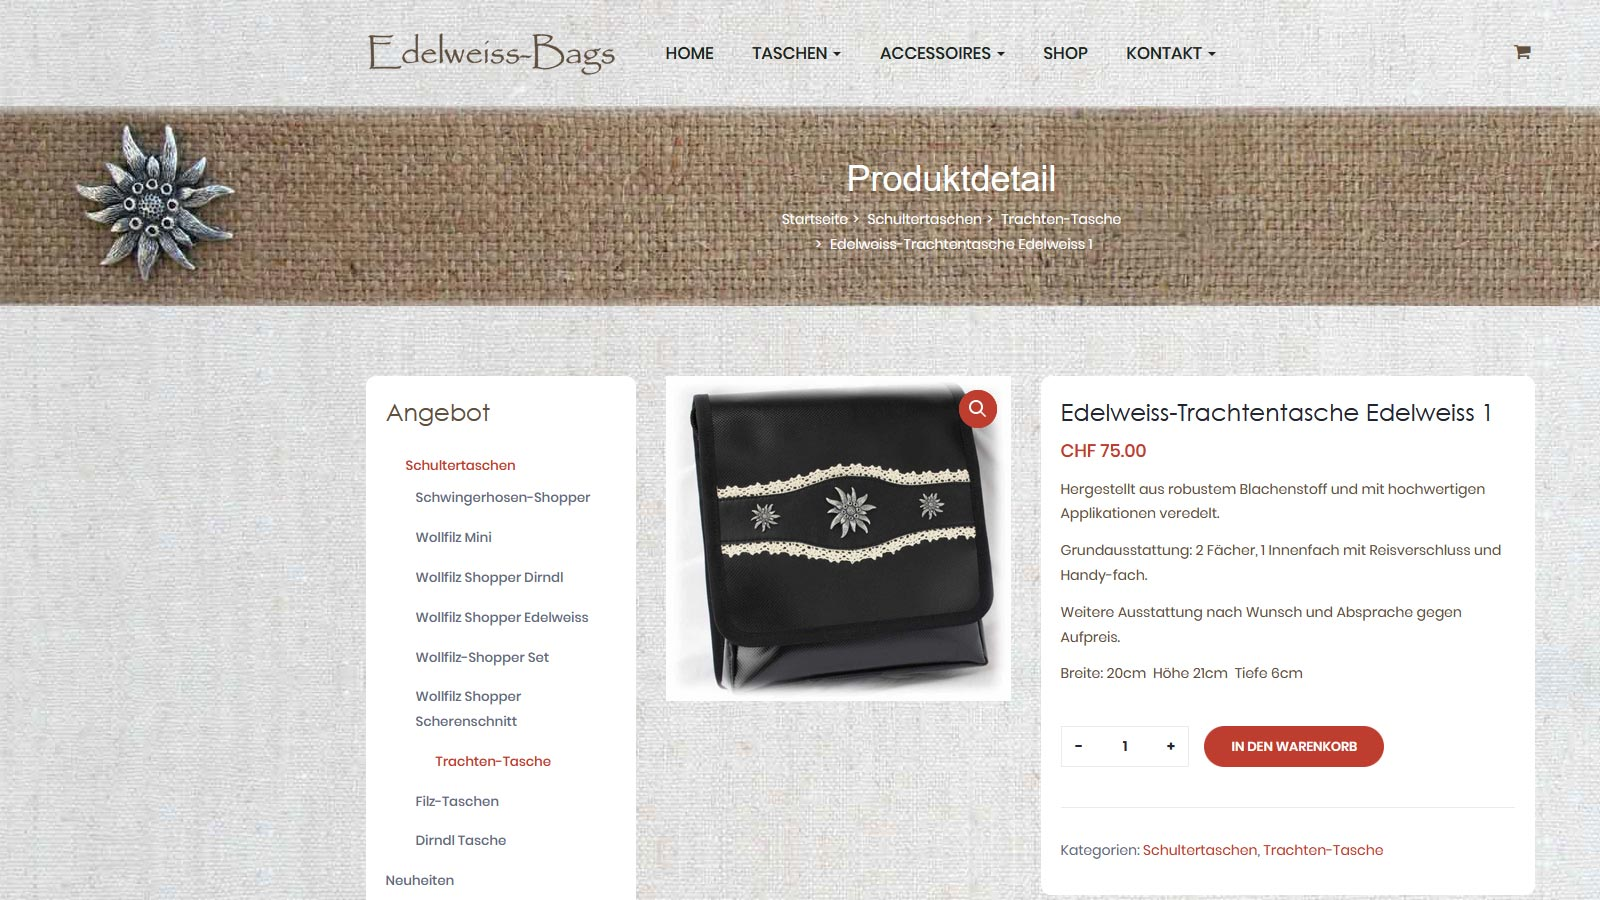 edelweiss-bags.ch